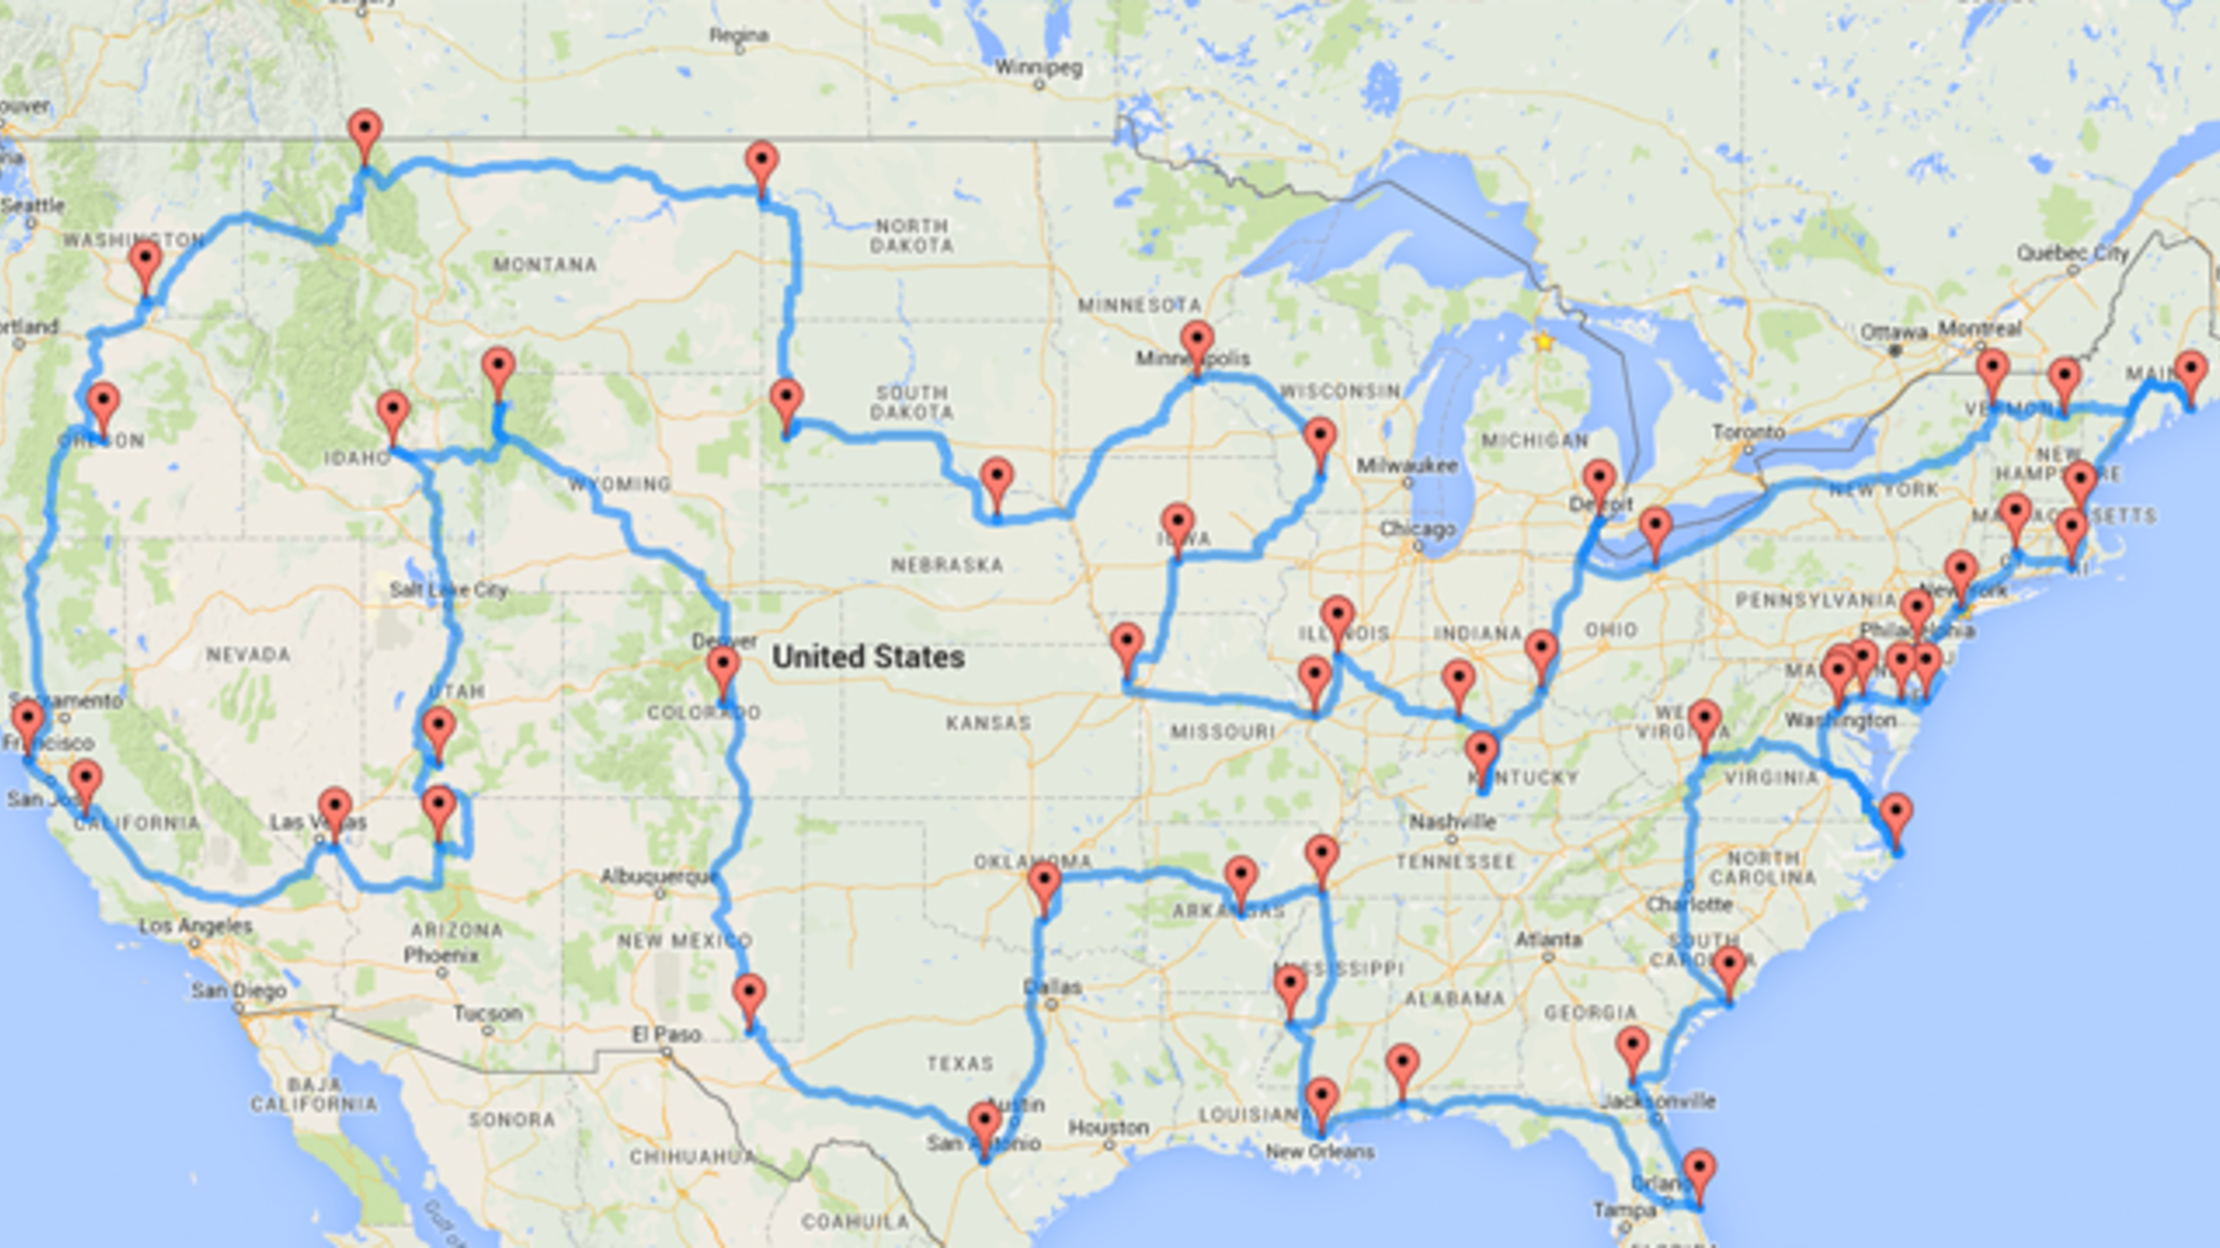 This Map Shows the Ultimate U.S. Road Trip | Mental Floss Road Map Of Ny And Pa on map of ny towns, map york pa, map of new jersey and pennsylvania border, map of ny and pennsylvania, map of western pennsylvania railroads, map of pennsylvania pa, map of upstate new york, map of ohio and ny, map ohio pennsylvania and new york, map of ma and ny, map of pennsylvania with cities, map of ny and ct, map of connecticut and new york new jersey, new york map binghamton ny, map of nj ny border, map of westfield pa, map of western pa, map of vt and ny, map of pennsylvania and new york state, map of nc and ny,